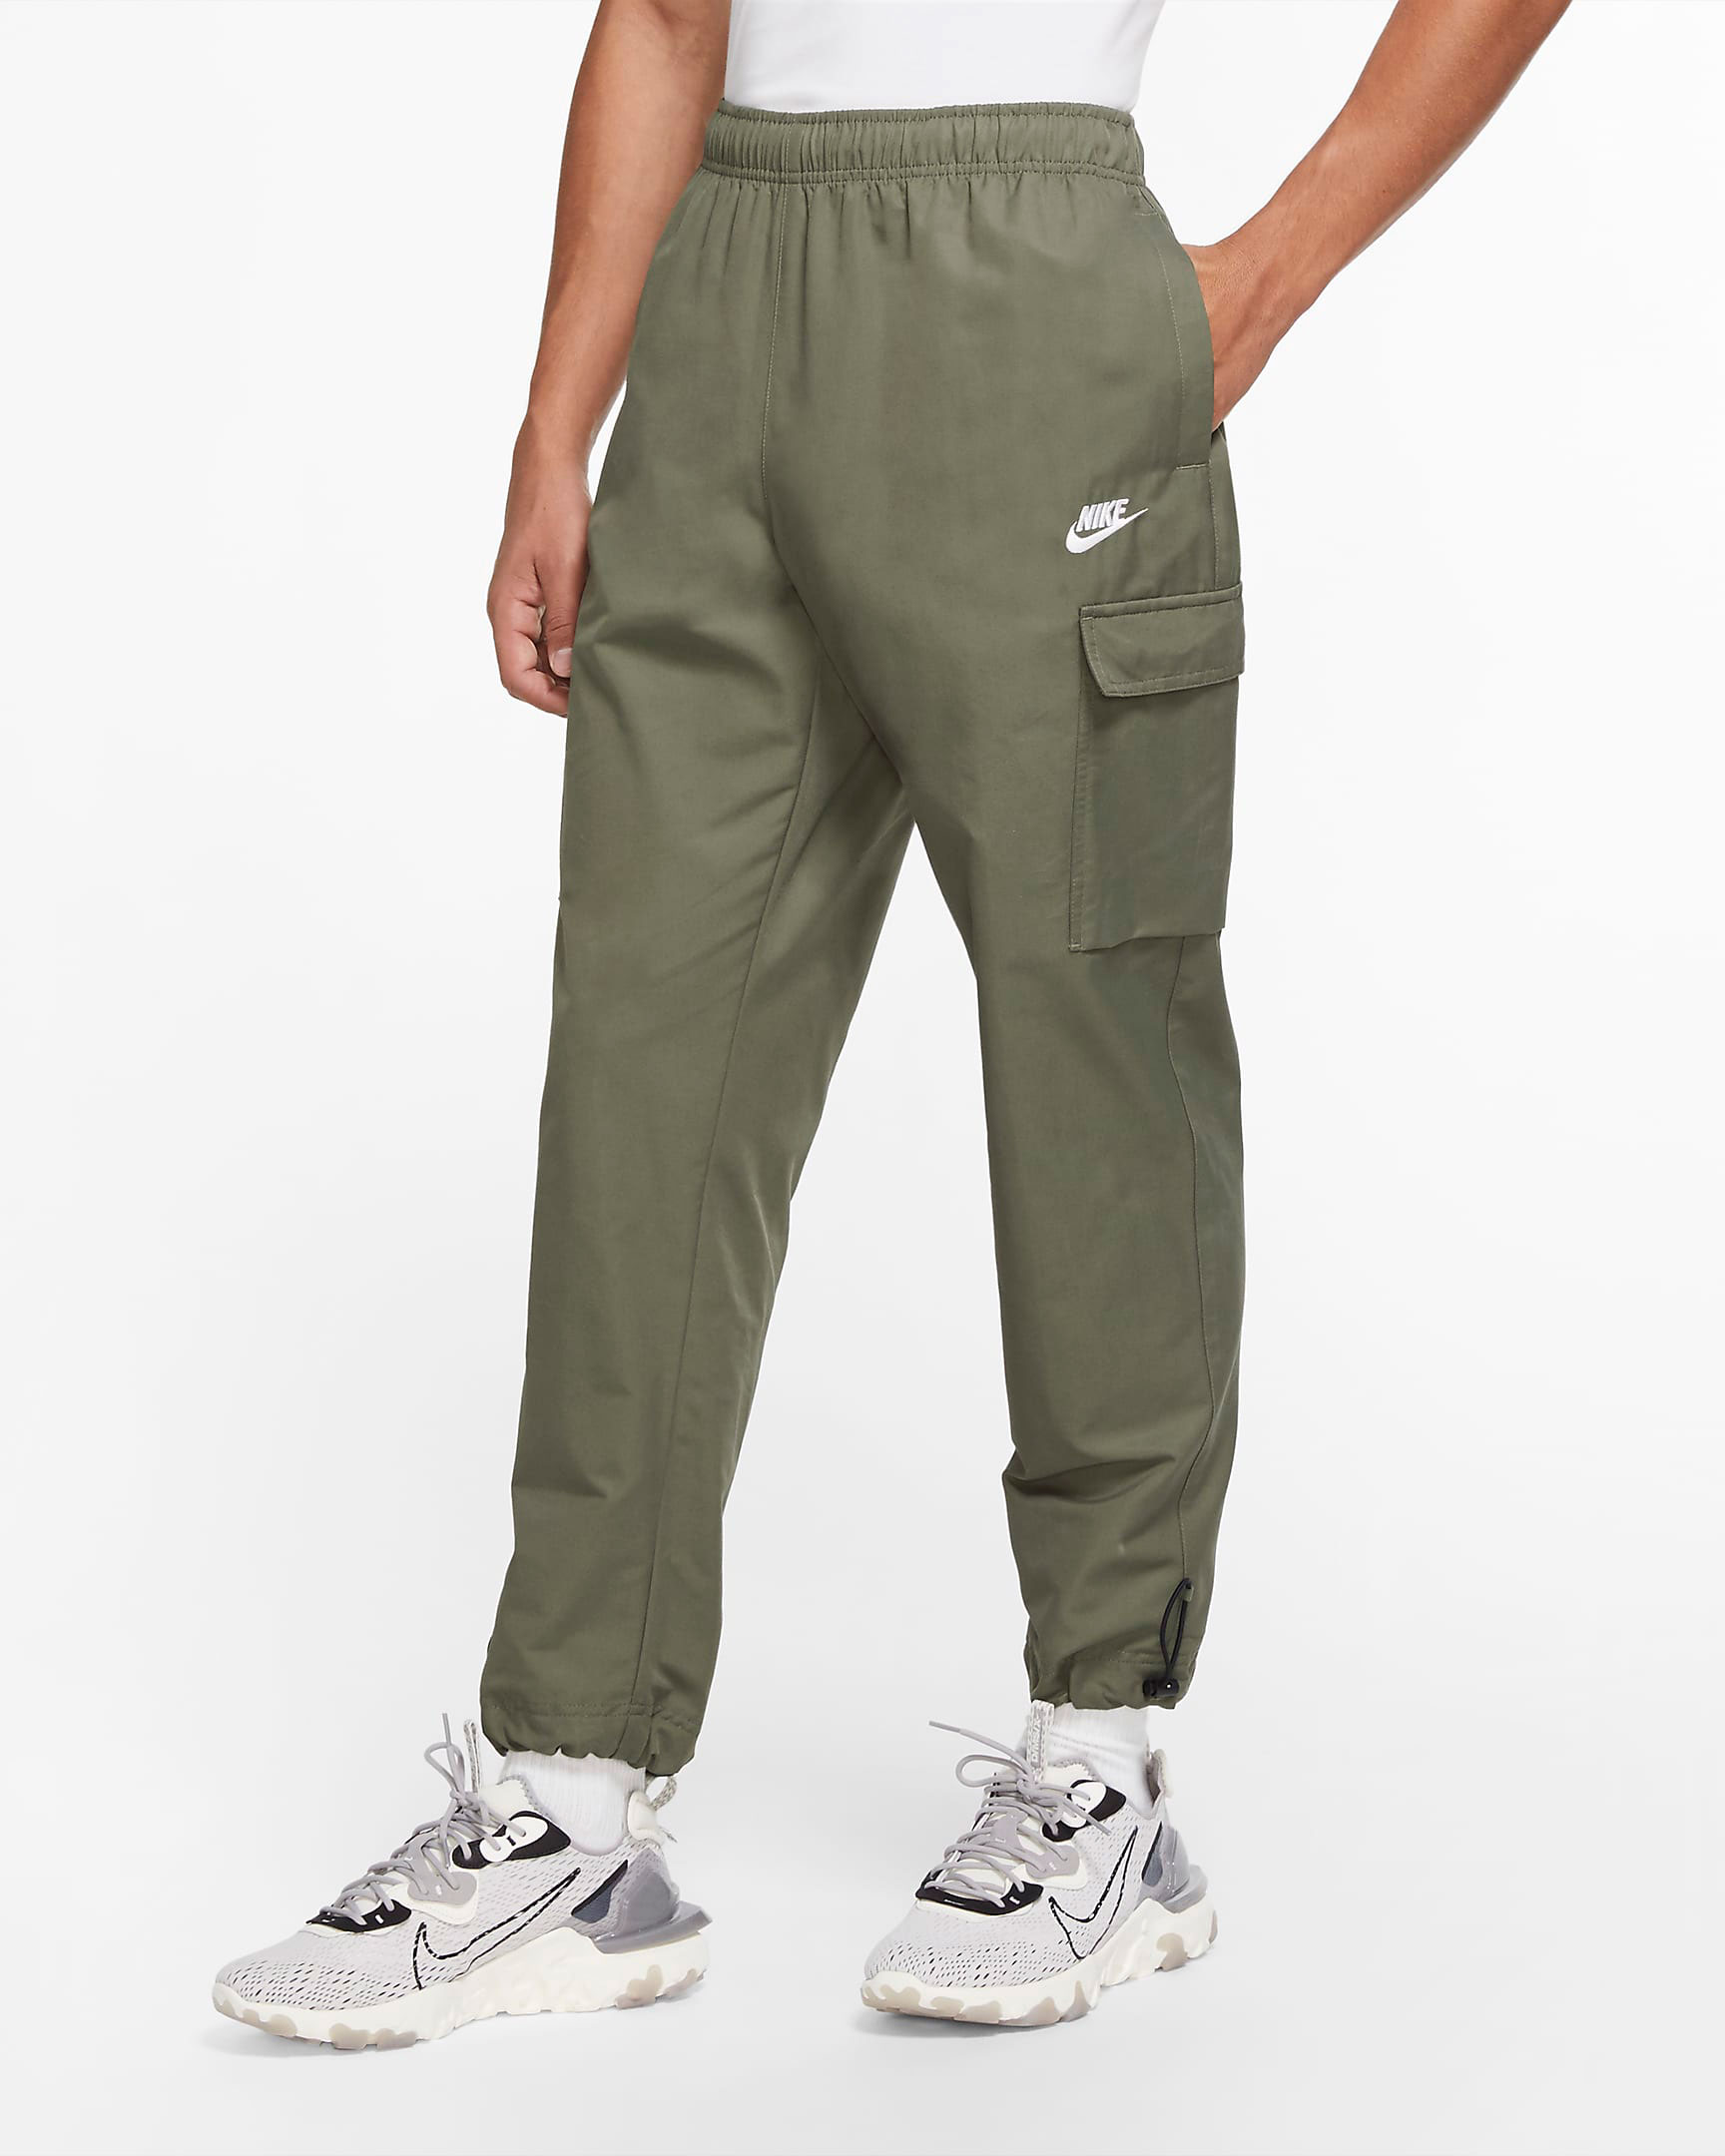 nike-sportswear-woven-pants-twilight-marsh-olive-green